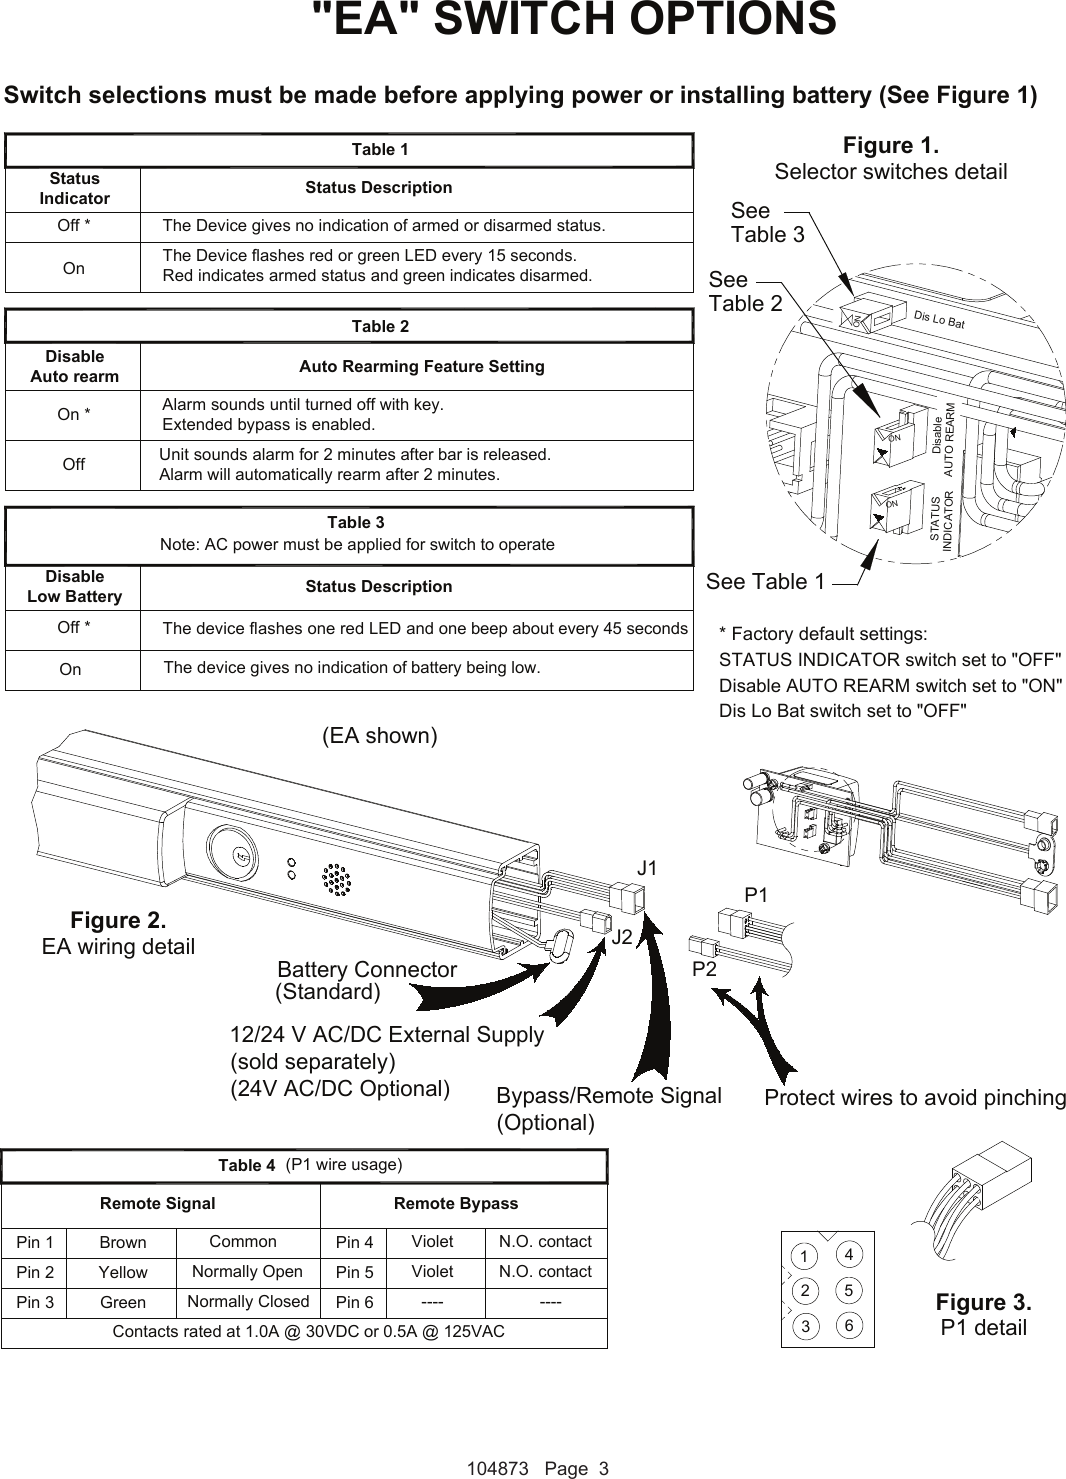 Detex Electrical Instructions For Advantex Ea Or Ex S 104873 Wiring Diagrams Page 3 Of 7